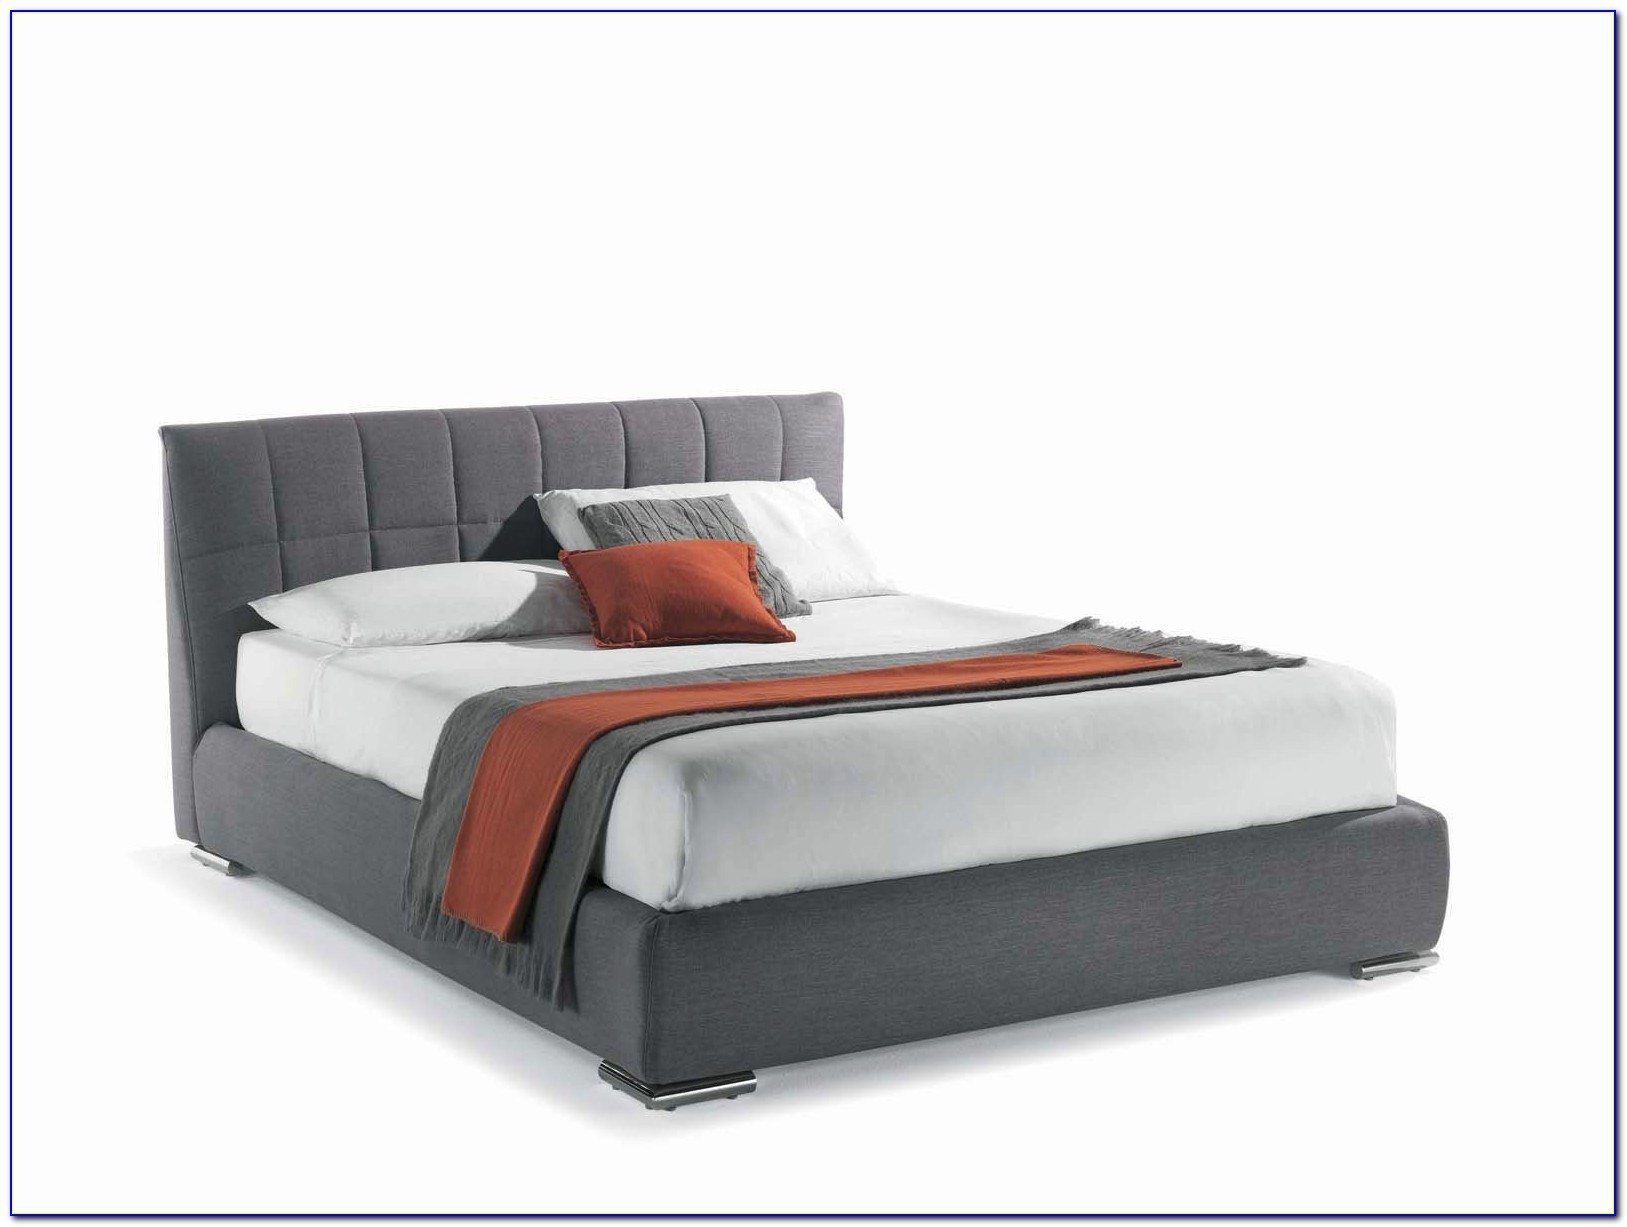 Bed Frame No Headboard Uk